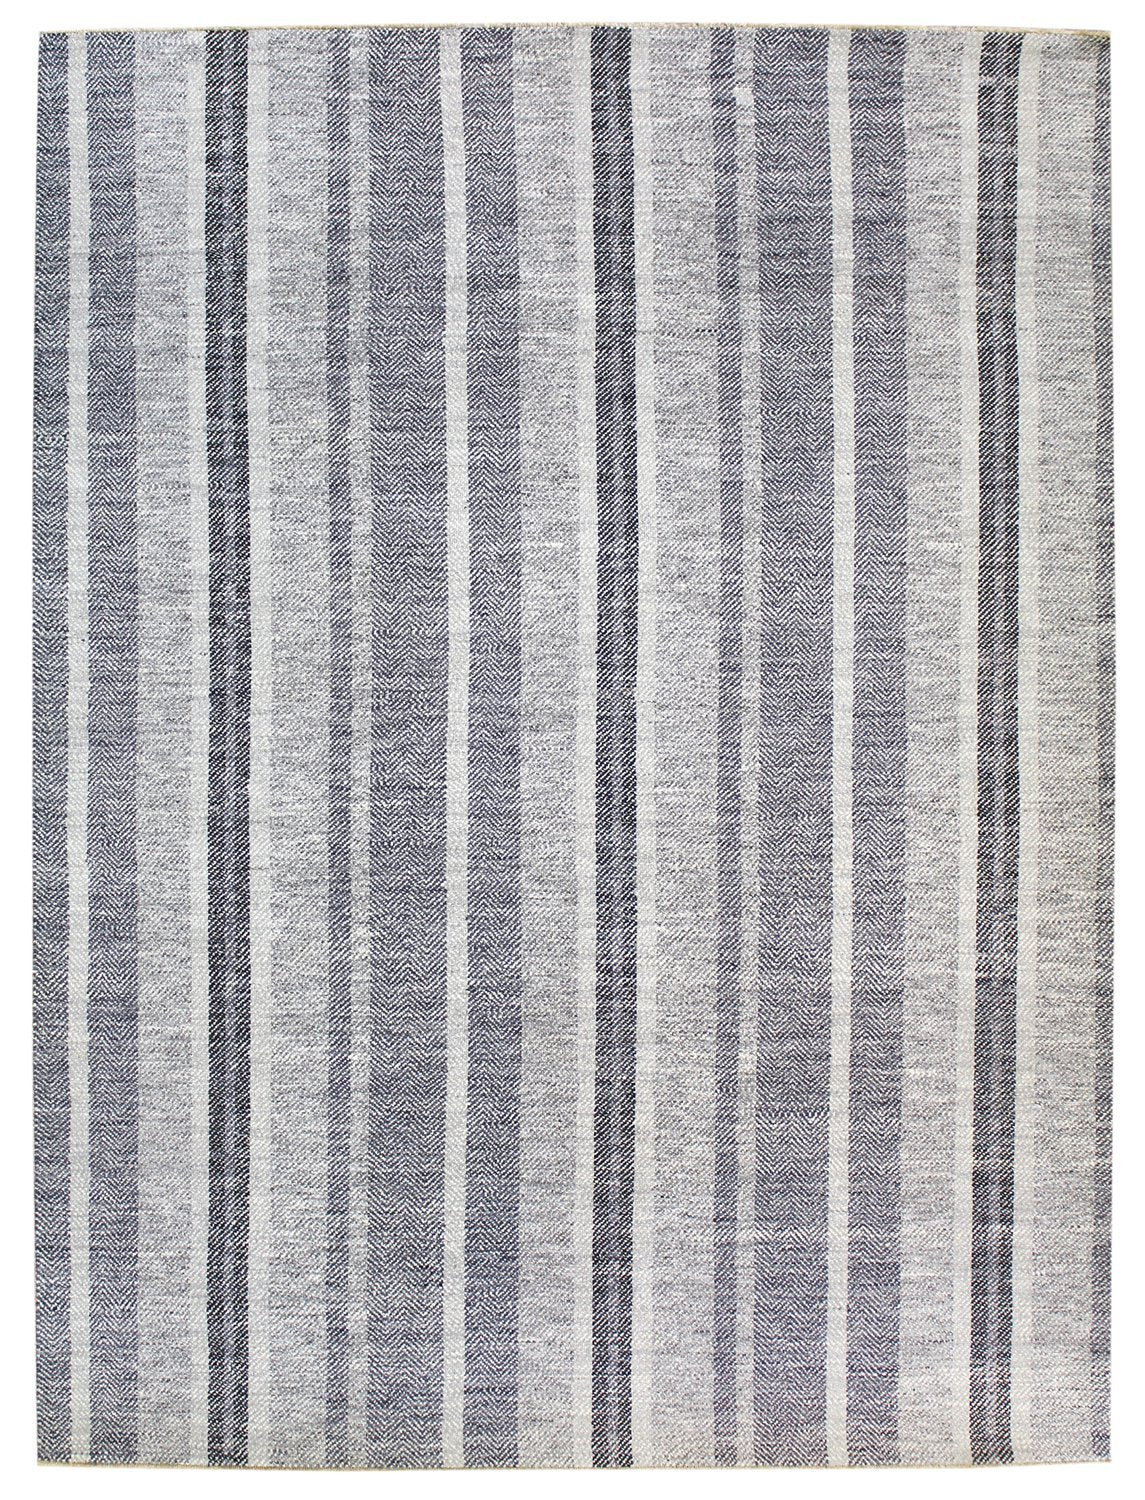 Vani Sayeed Handwoven Contemporary Rug